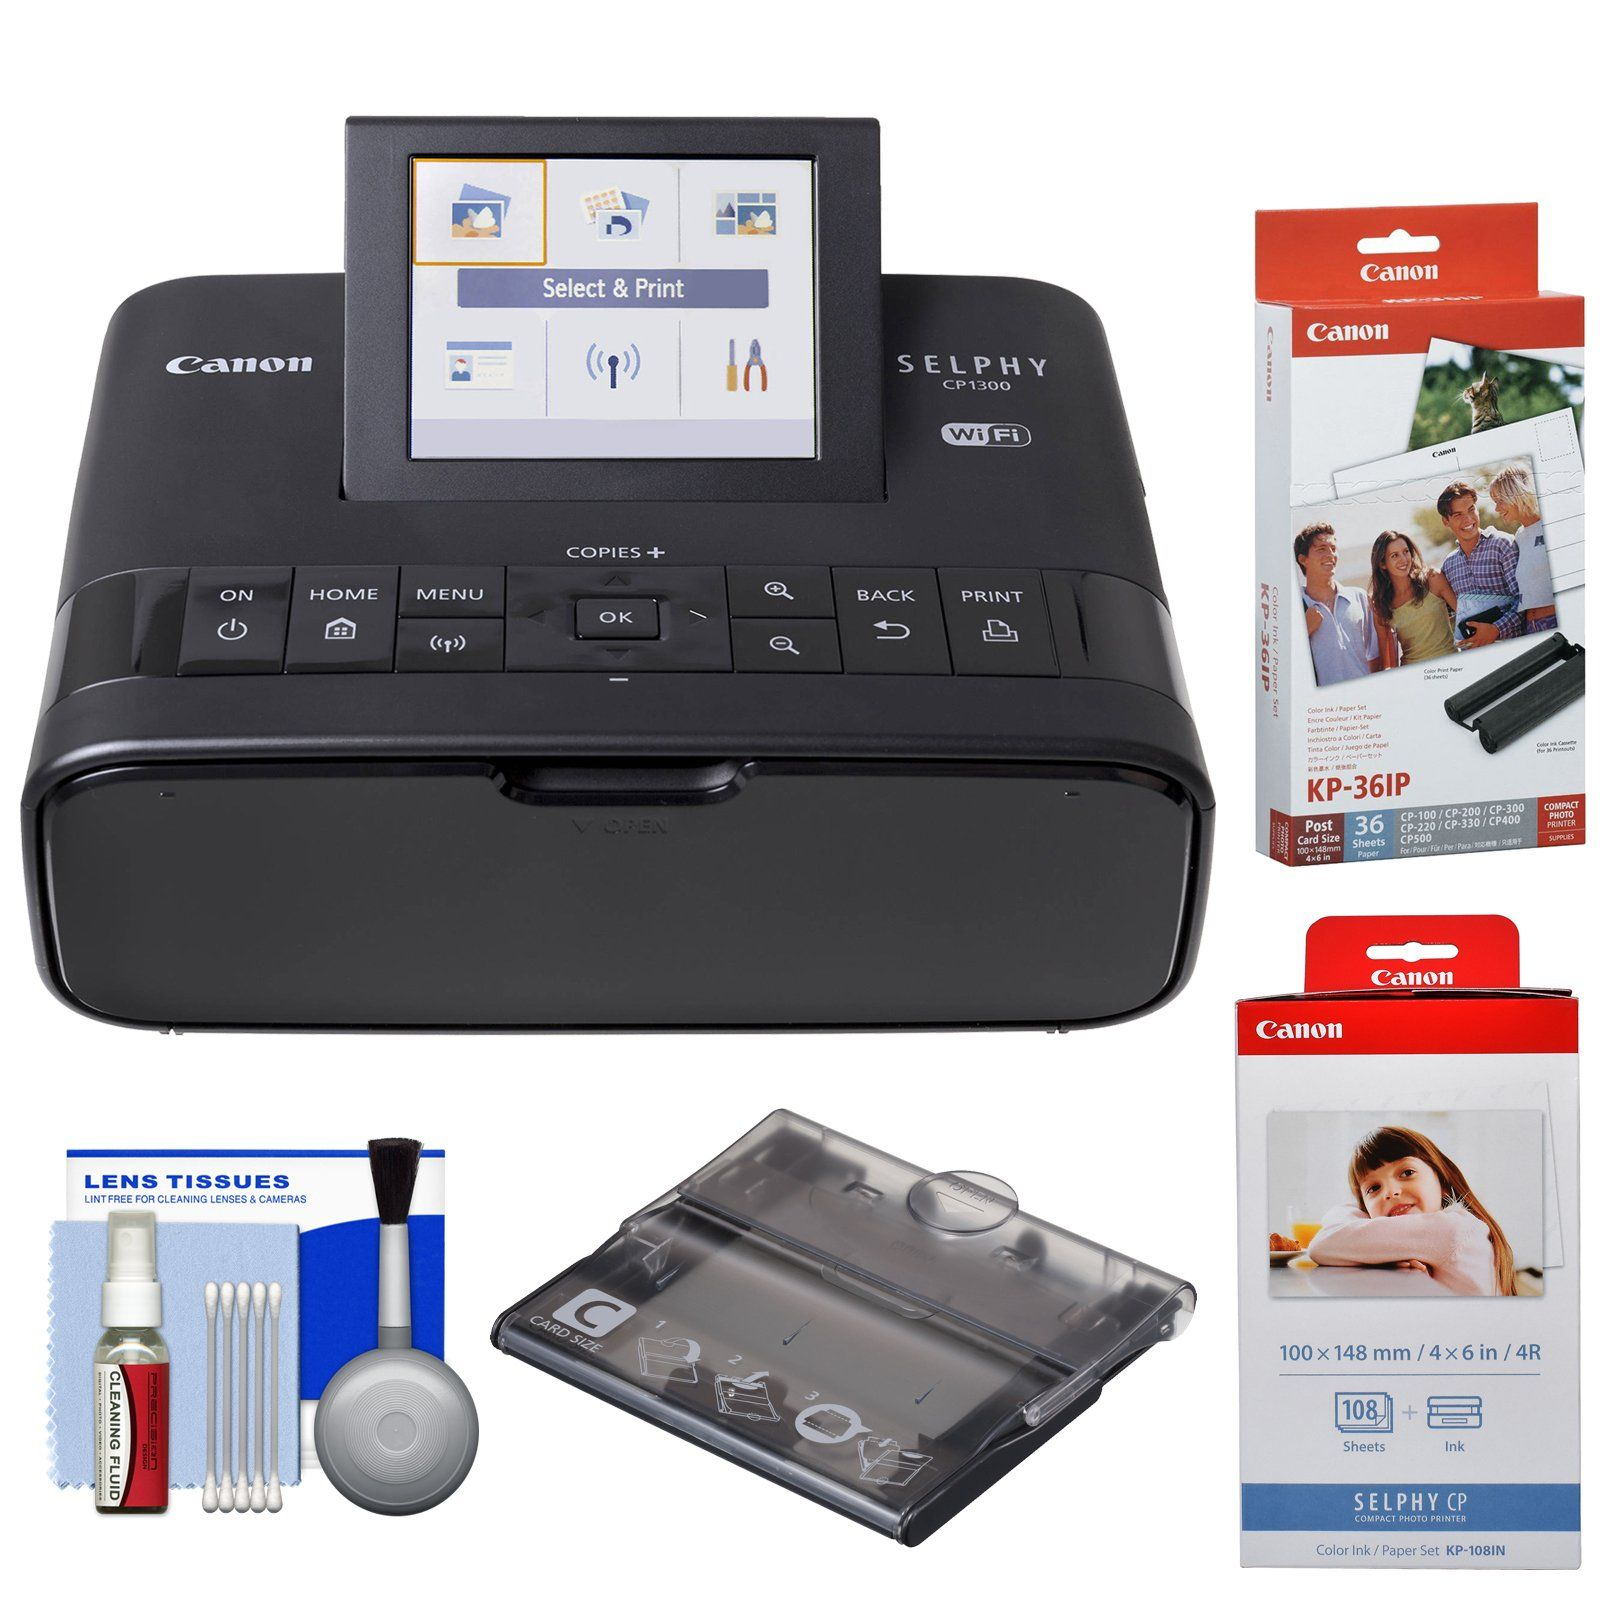 Canon Selphy Cp1300 Wi Fi Wireless Compact Photo Printer Black